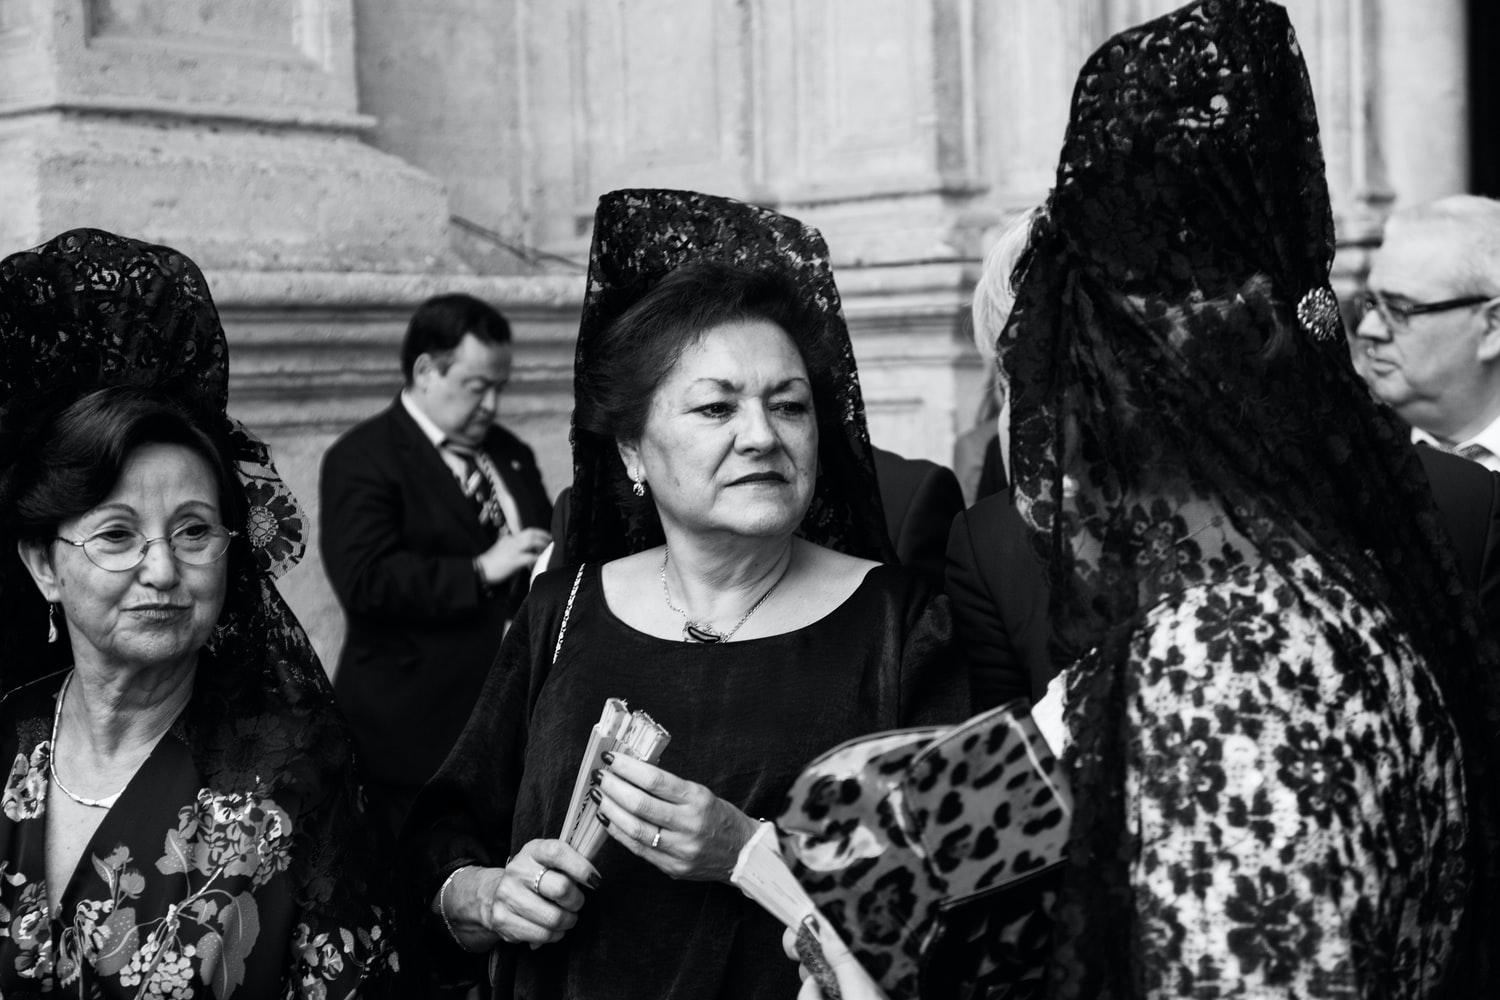 women in Spain wearing the traditional mantilla.